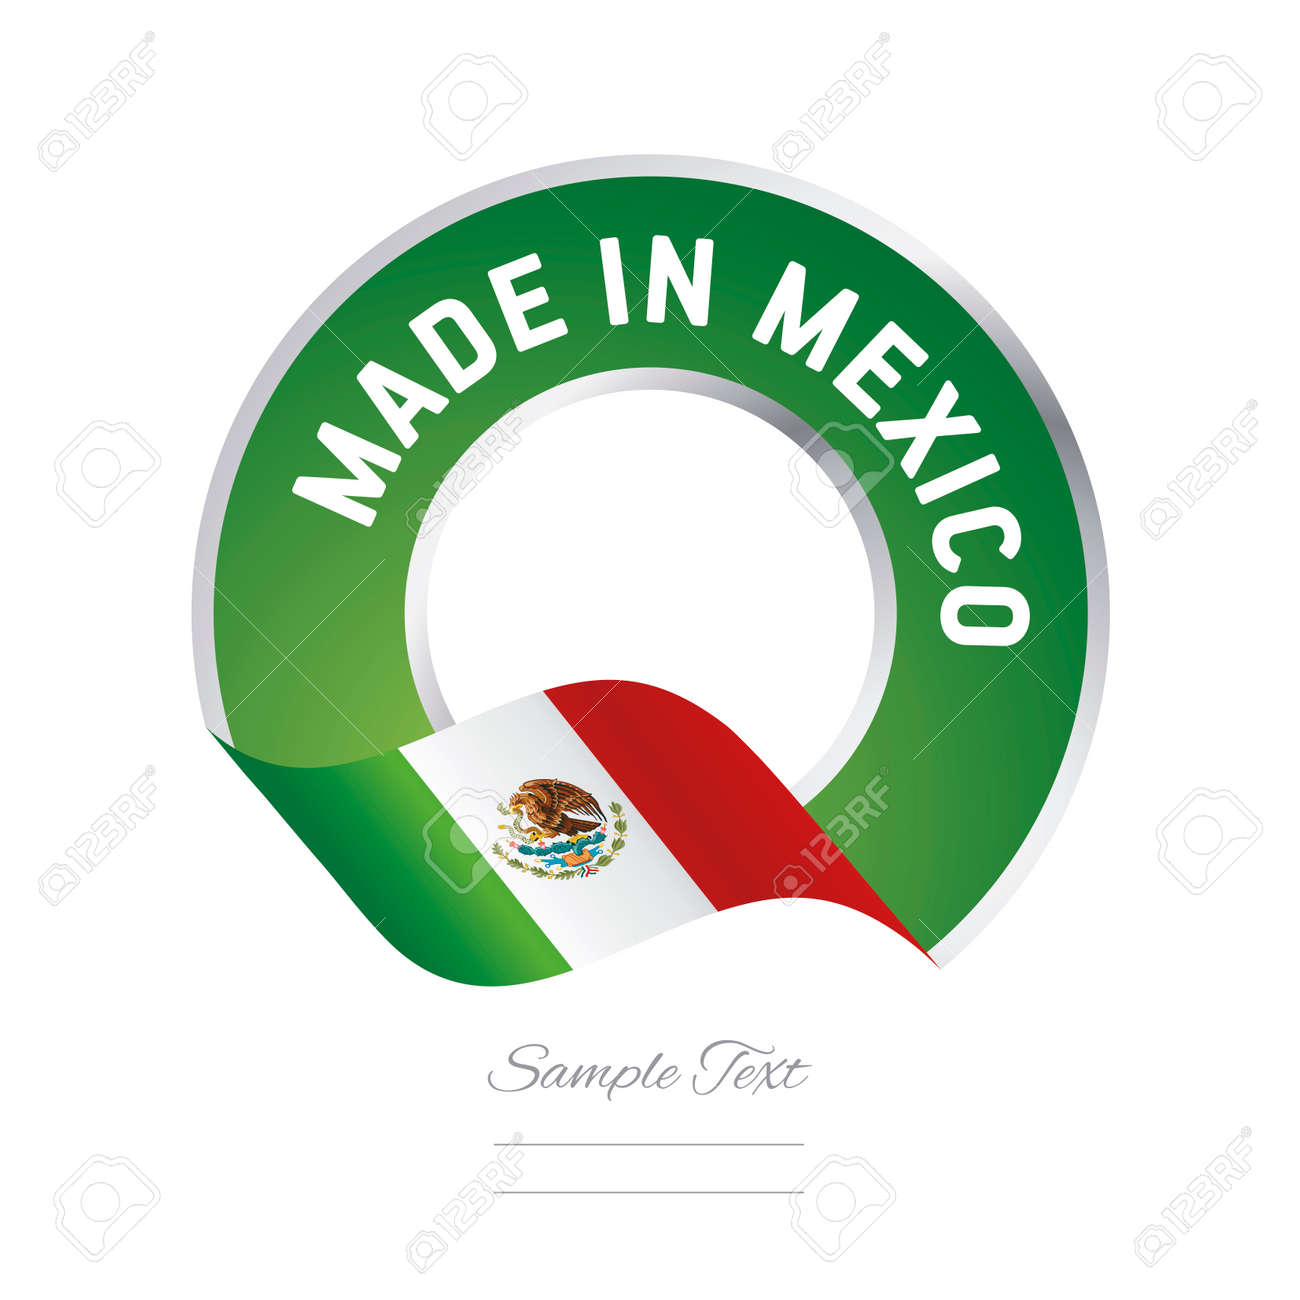 made in mexico flag green color label button logo icon banner rh 123rf com tequila made in jalisco mexico logo made in mexico logo shirt